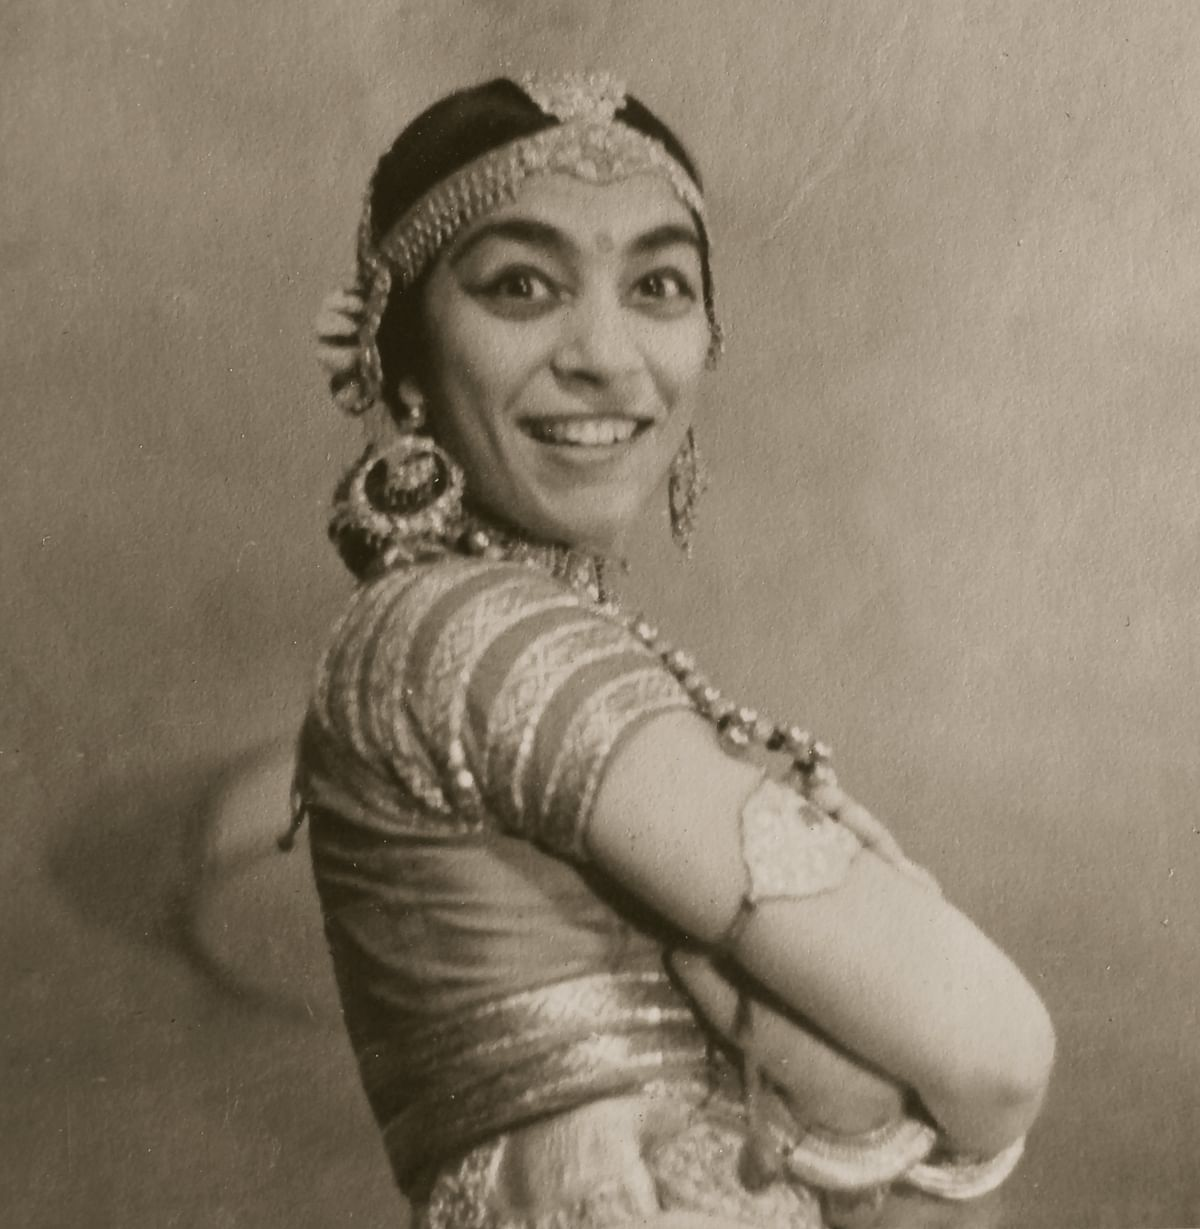 Zohra Sehgal Was a Firebrand, Both On and Off the Screen